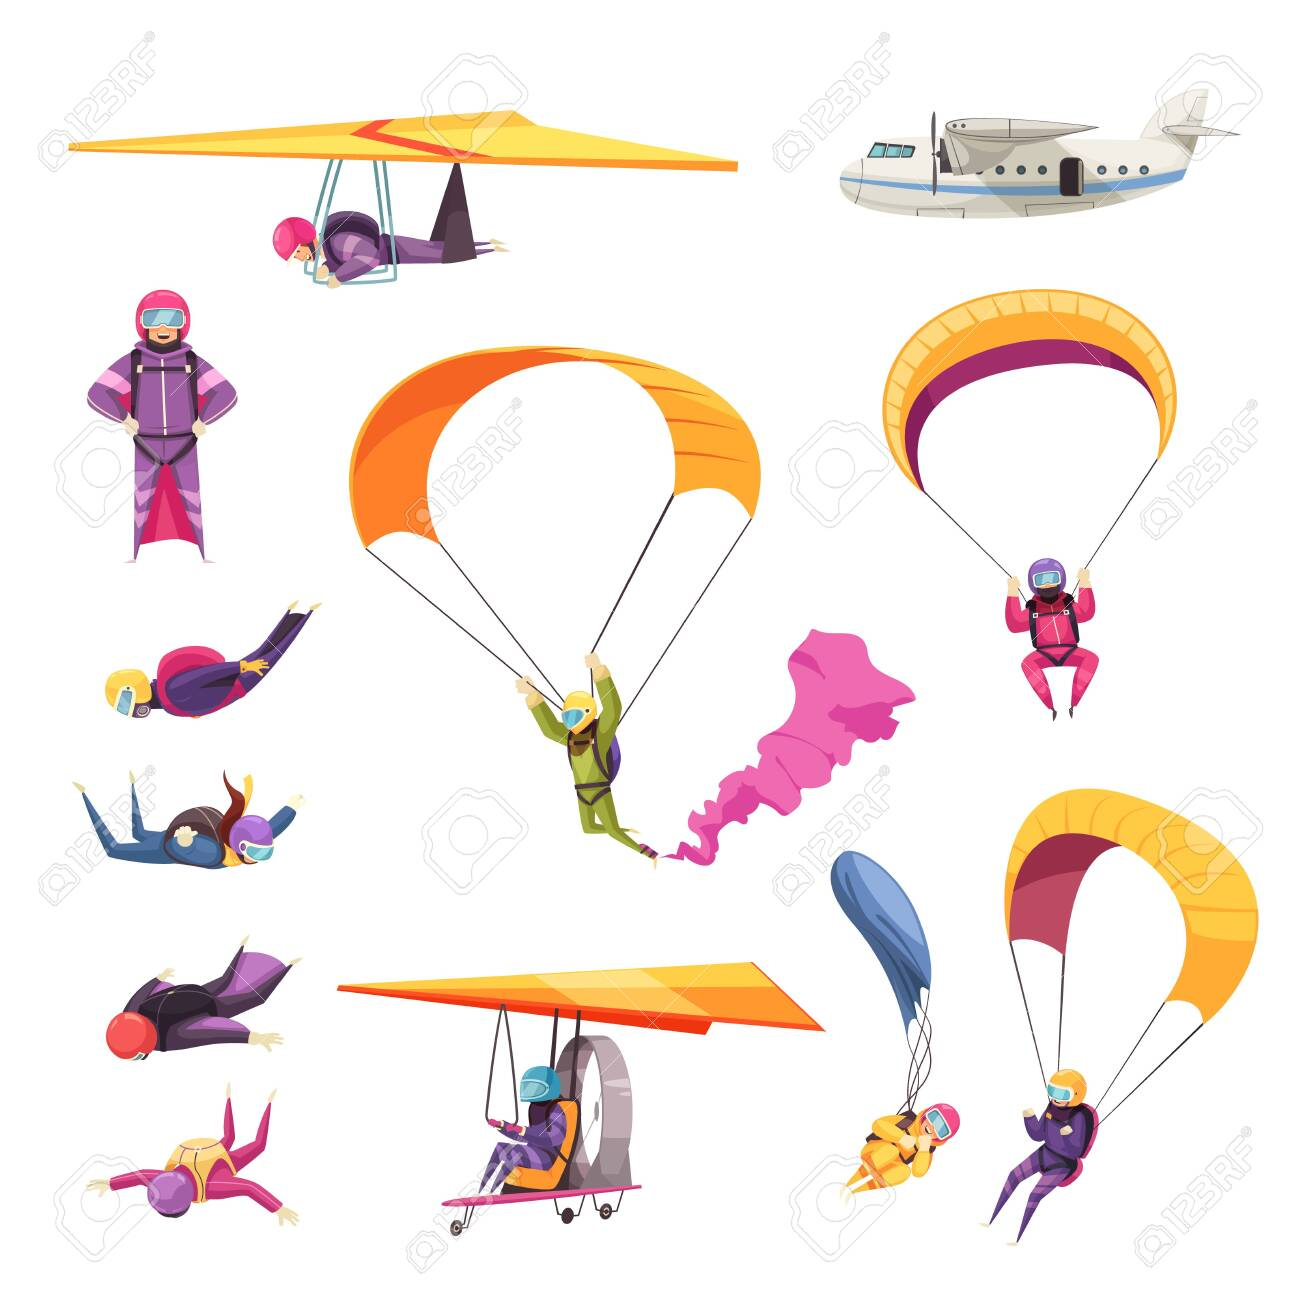 Skydiving extreme sport elements flat icons collection with parachute jump free fall airplane glider isolated vector illustration - 123522974